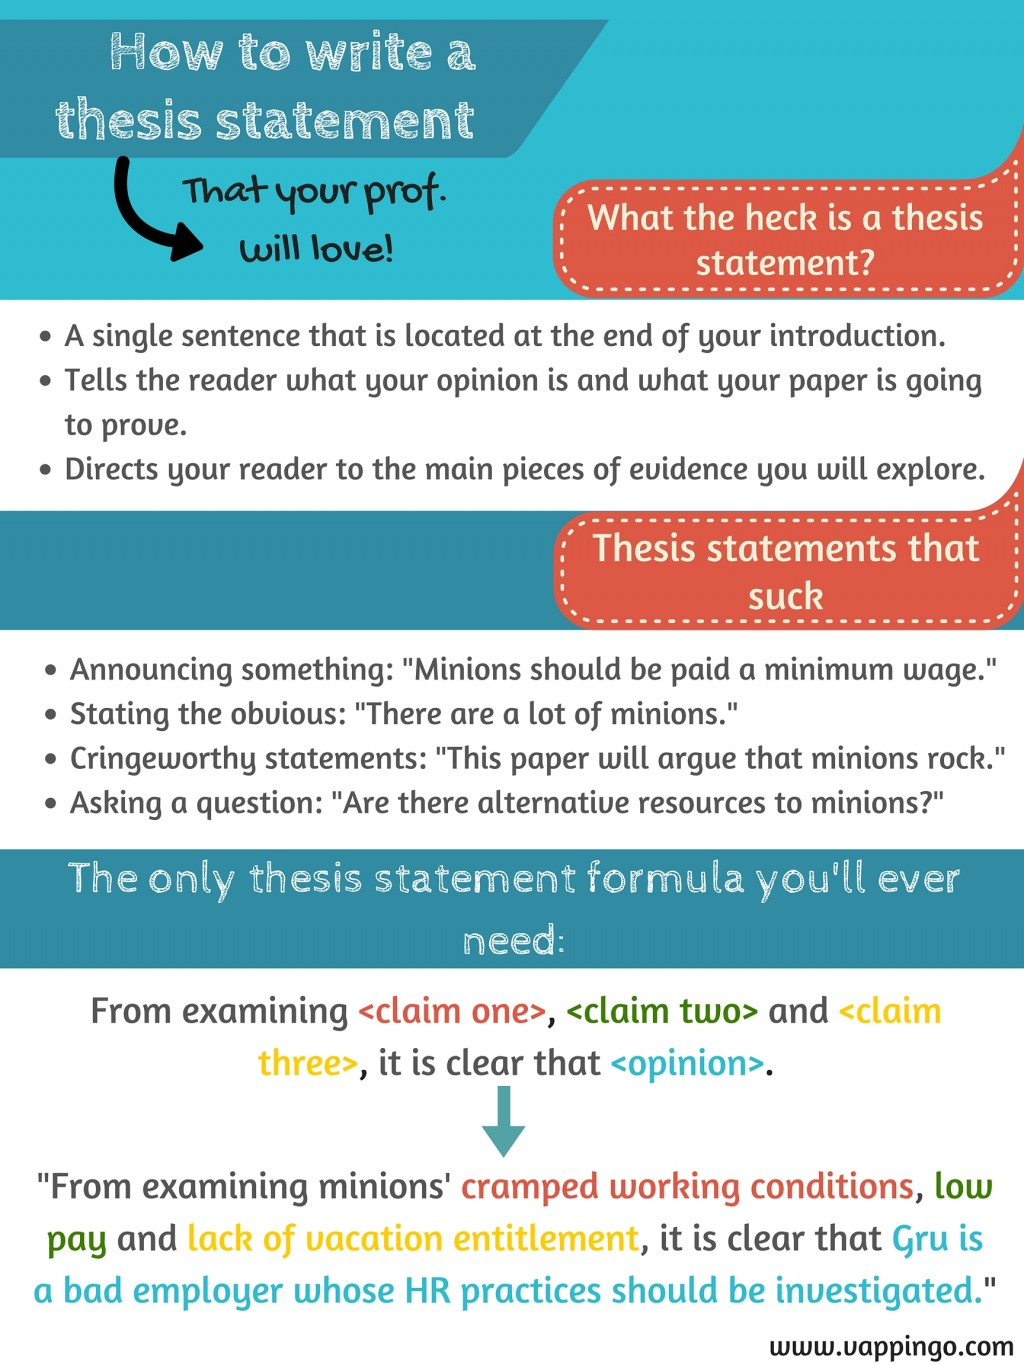 017 Essay Example How To Write Claim For An Argumentative Thesis Statement Frightening A Good Rebuttal In Large